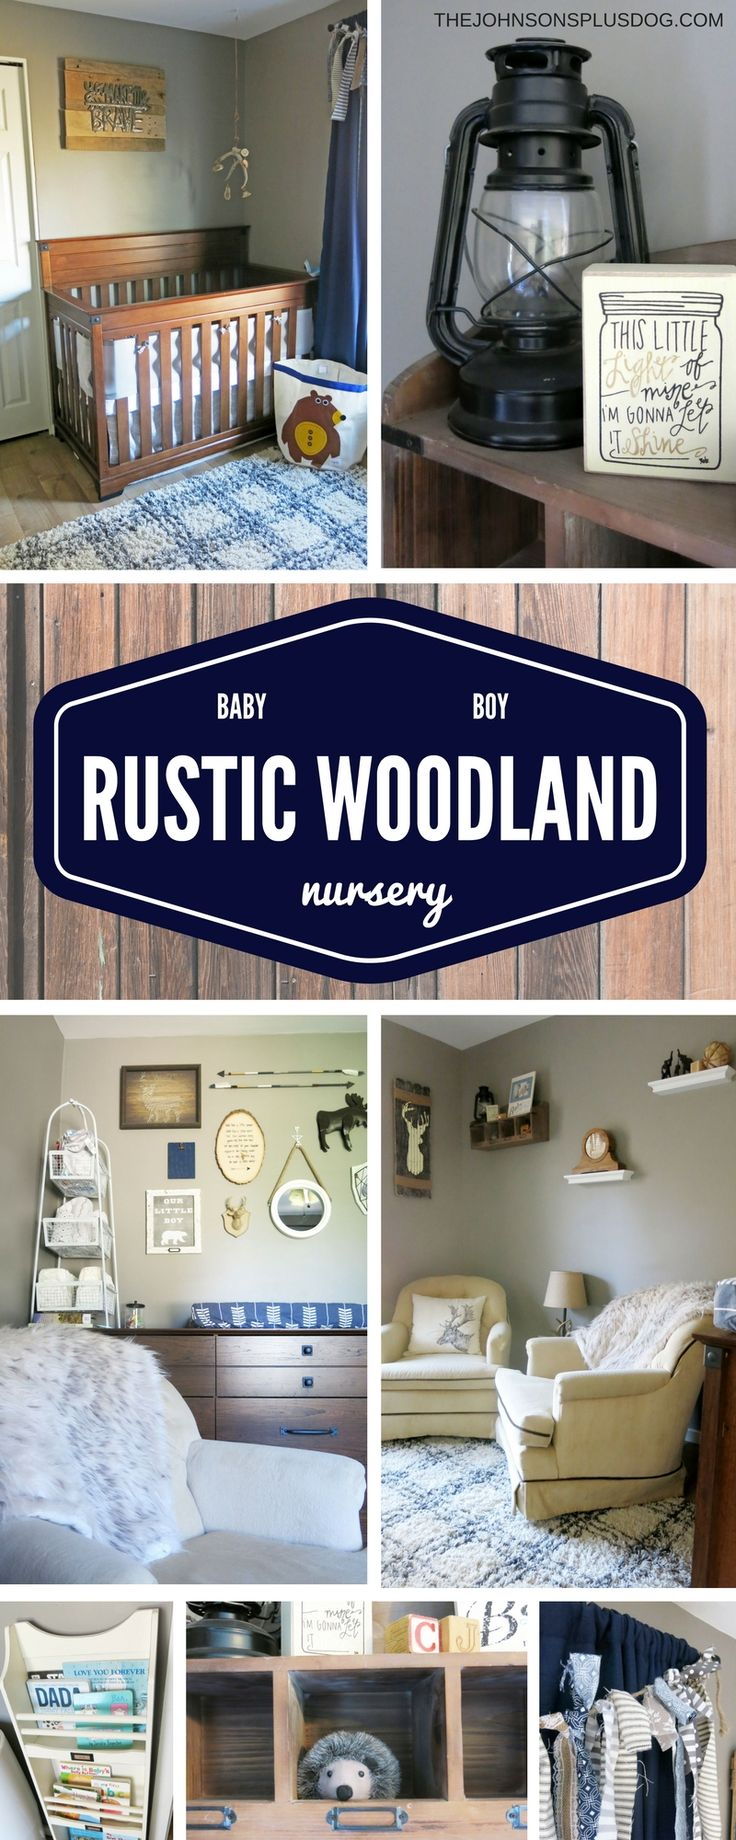 Baby Boy Nursery | Rustic Woodland Navy and Tan Baby Room | Baby Boy Rustic Woodland Nursery Inspiration | The Johnsons Plus Dog